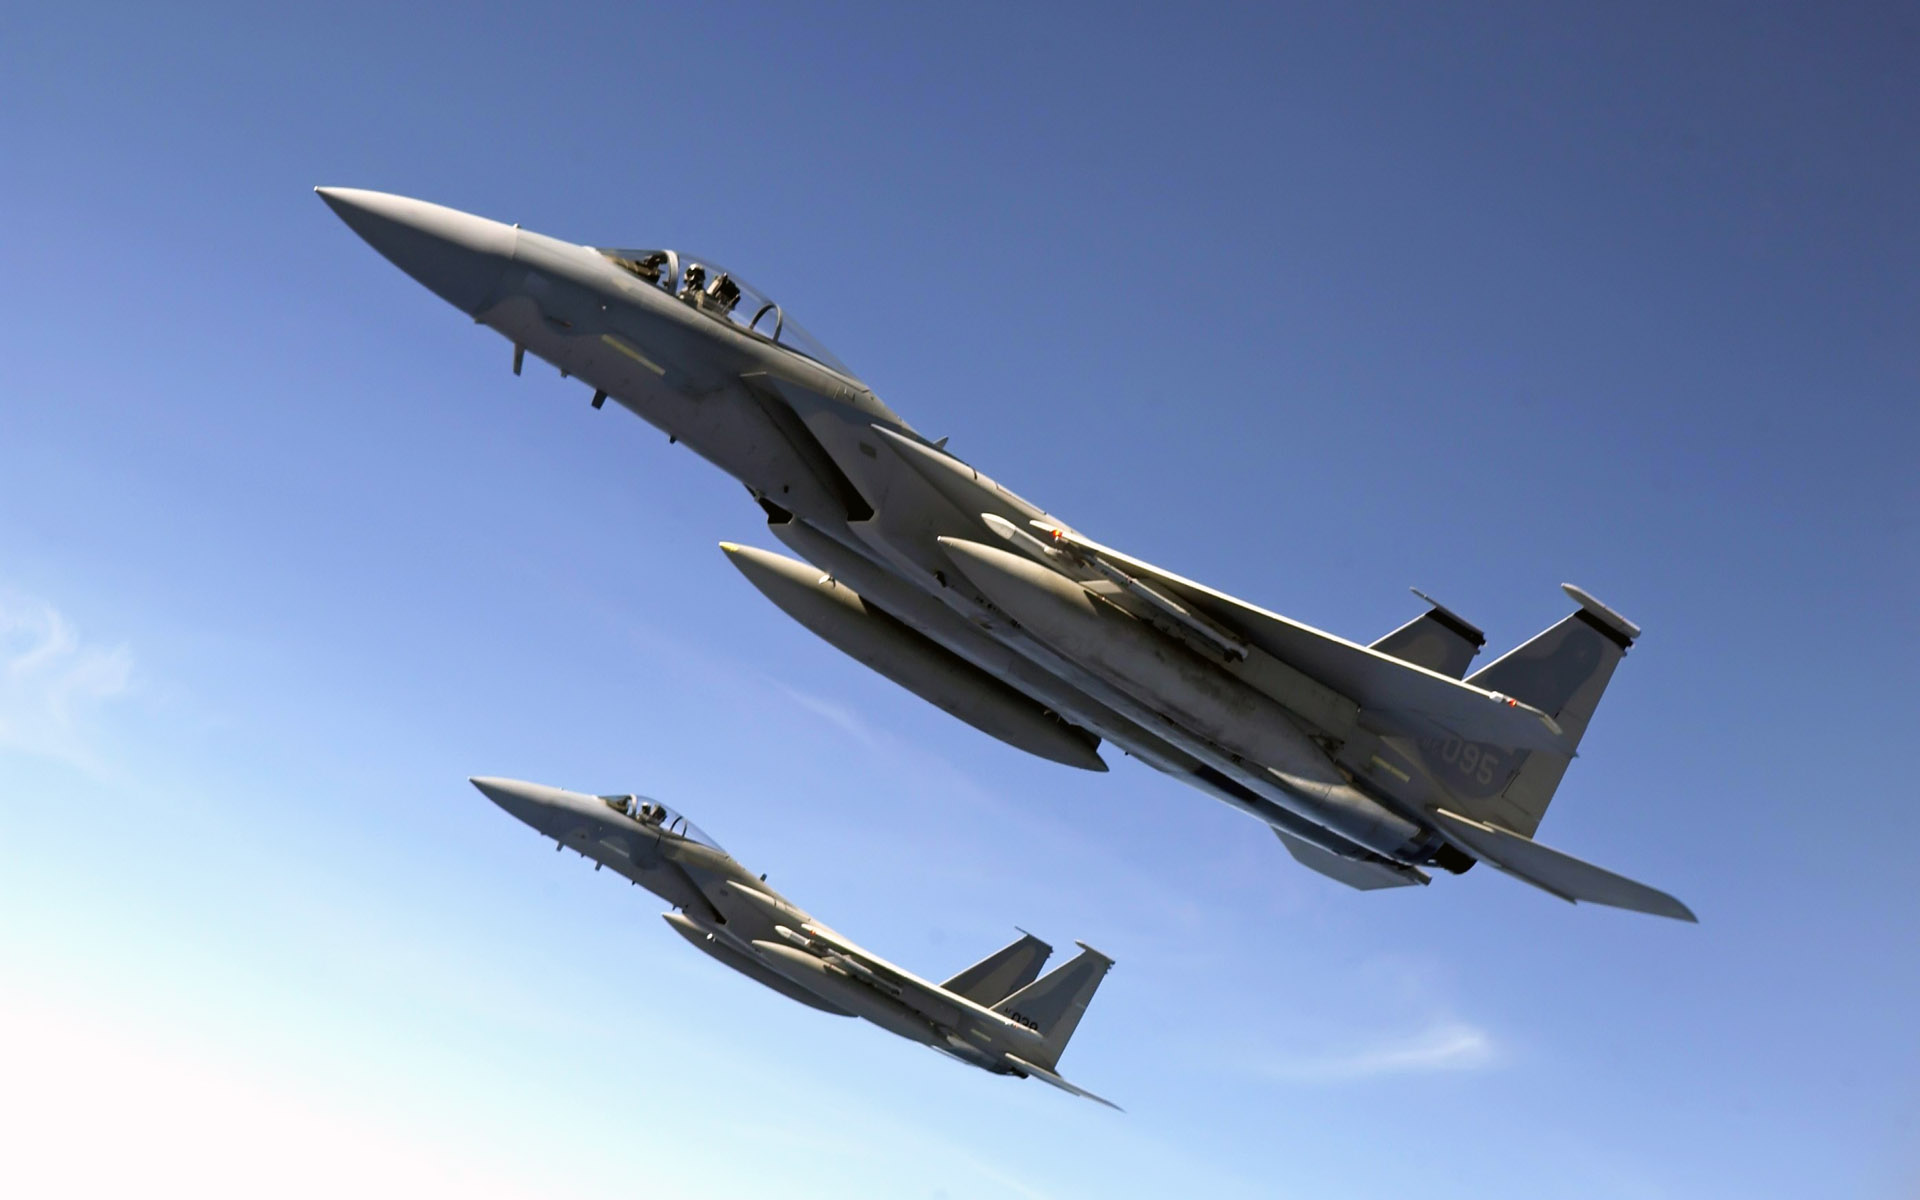 F 15 Eagles Fly Over the Pacific Ocean9380416164 - F 15 Eagles Fly Over the Pacific Ocean - Pacific, Over, Ocean, Eagles